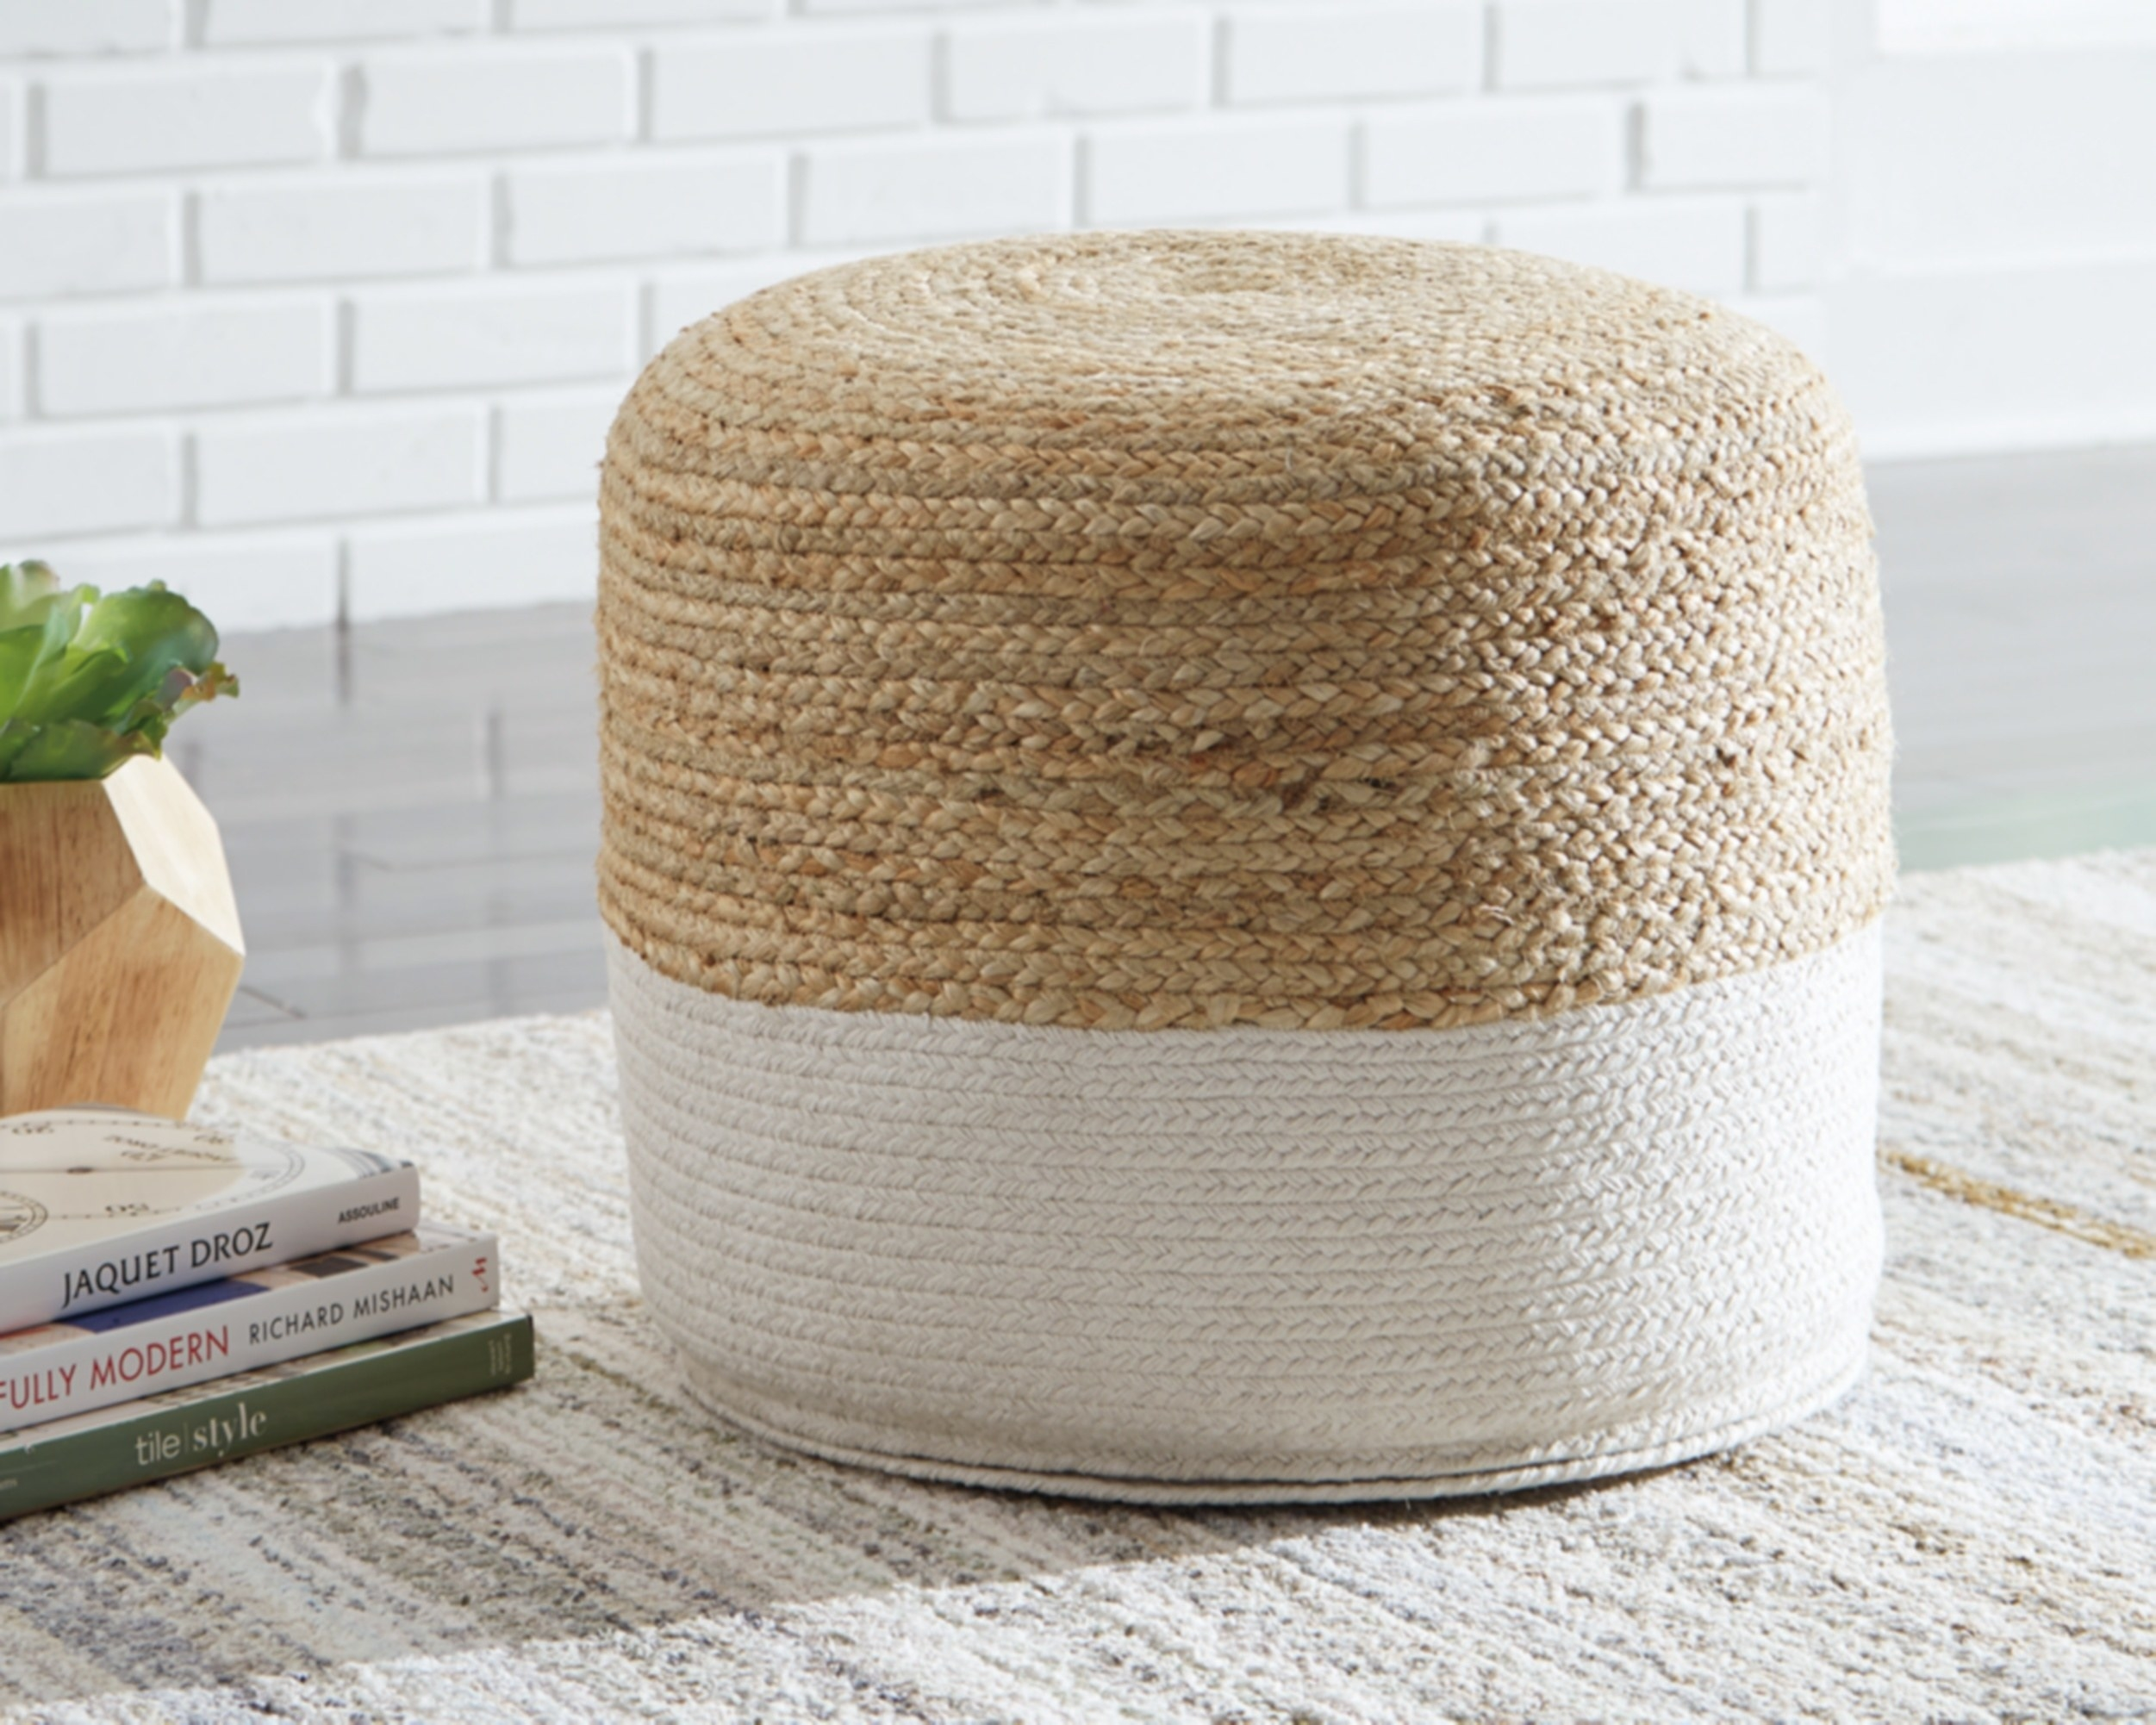 The pouf, which is cylindrical with a rounded top, and which is half white braided cotton, half  braided jute in a natural tone